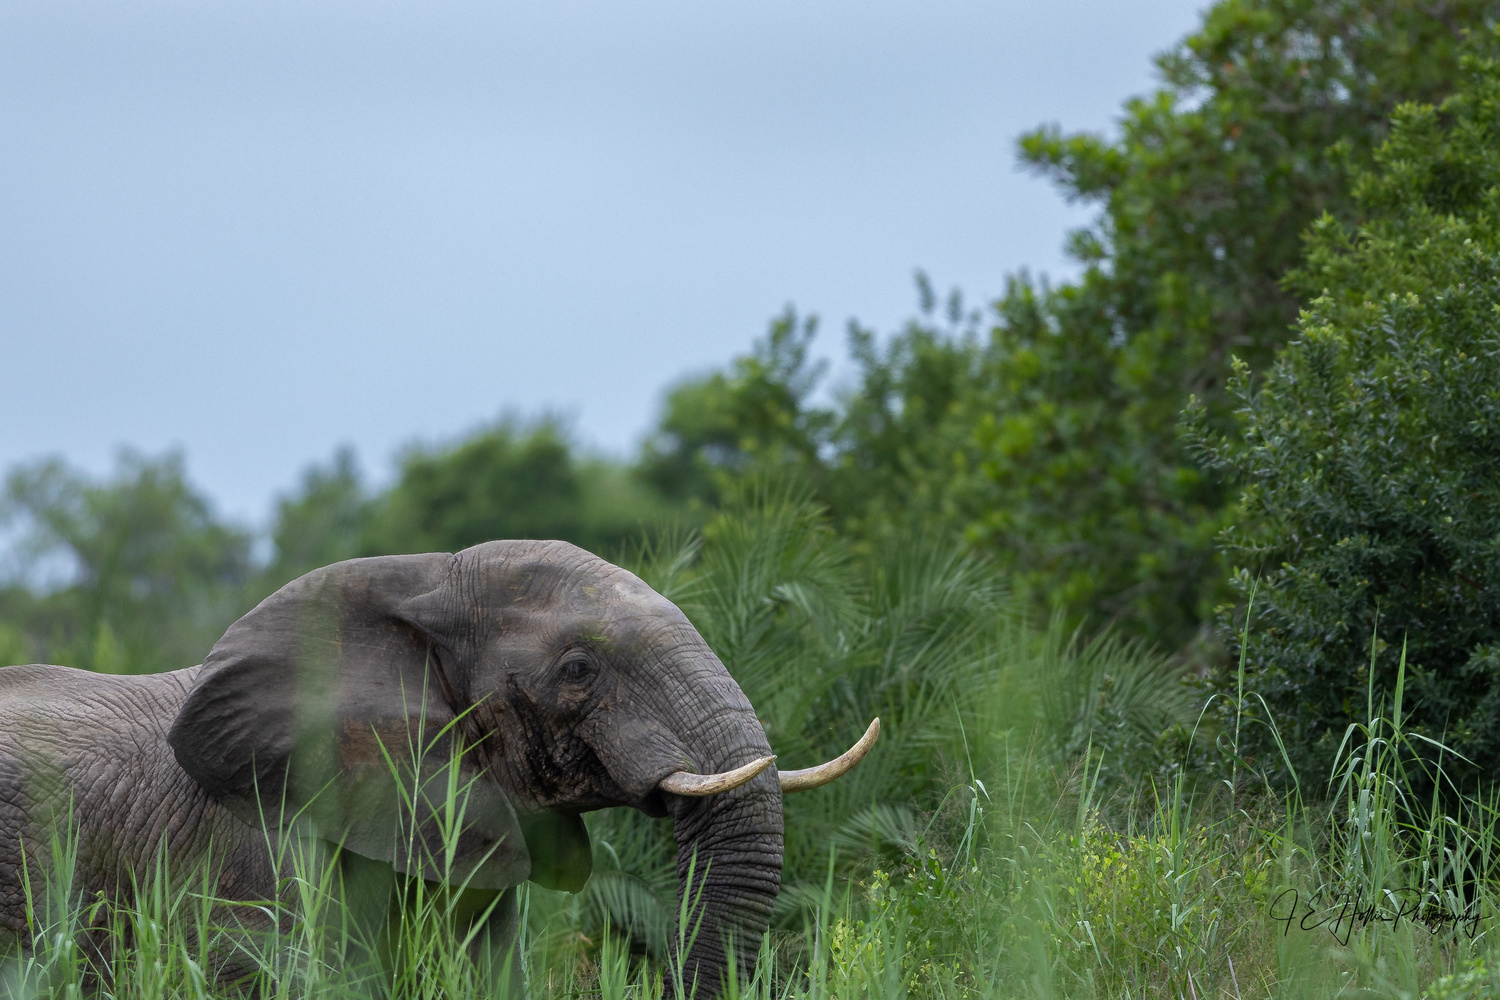 Elephant Bull in Musth in the Woods by J Hollis